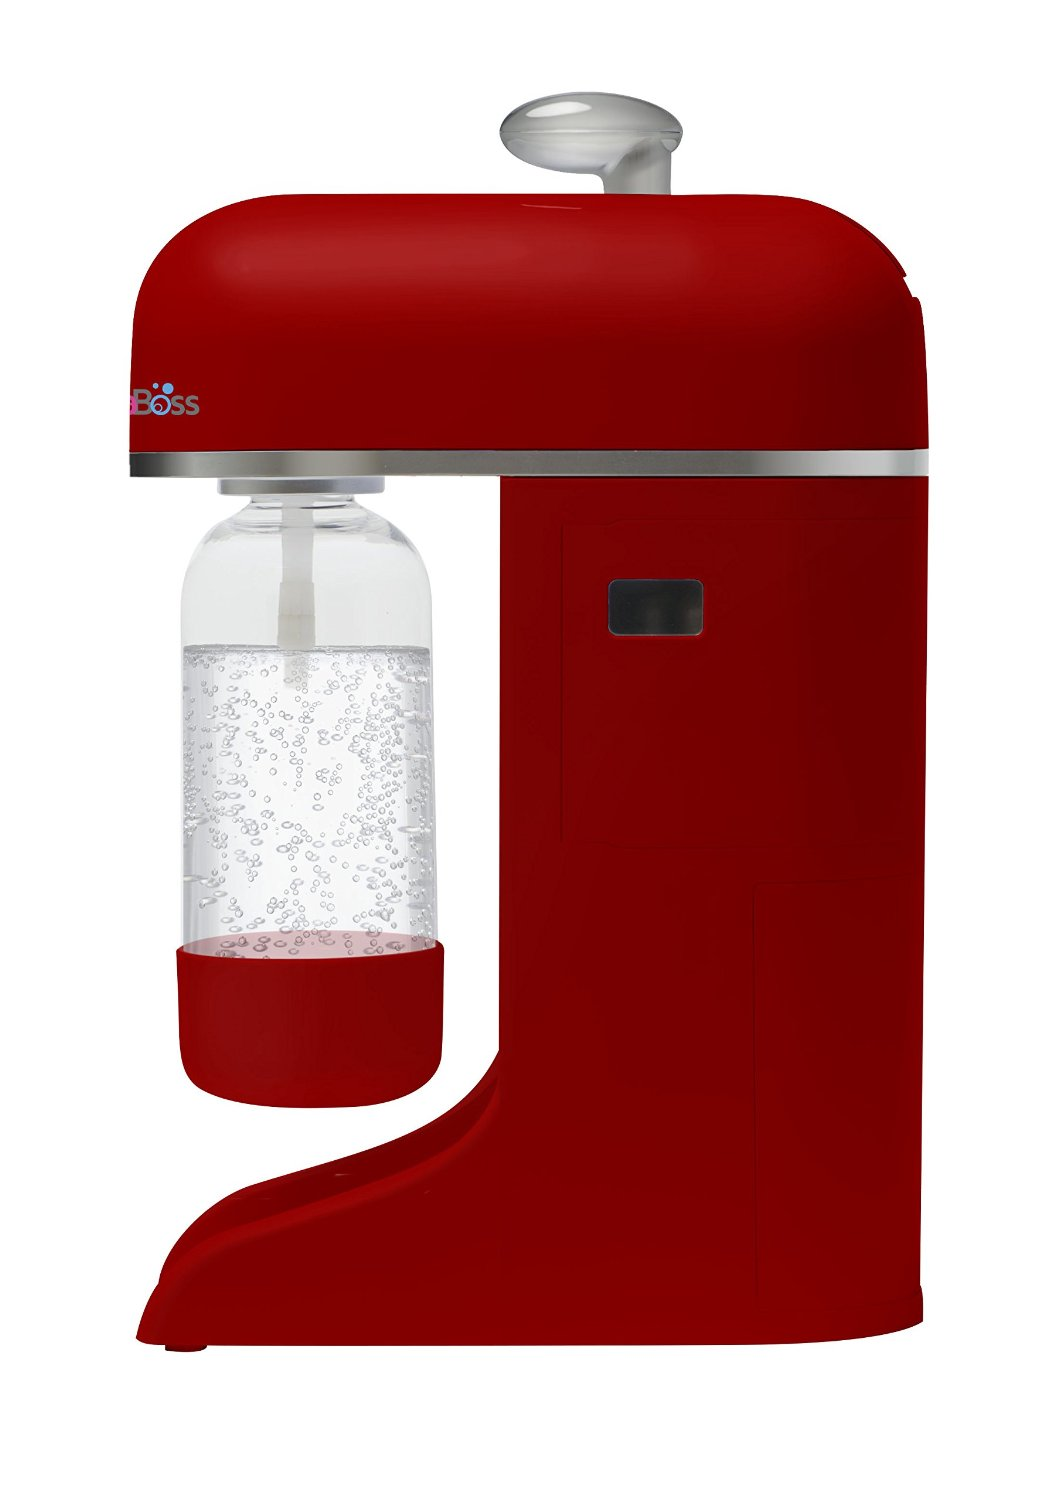 9 Best Soda Makers In 2016 Reviews Of Soda Machines